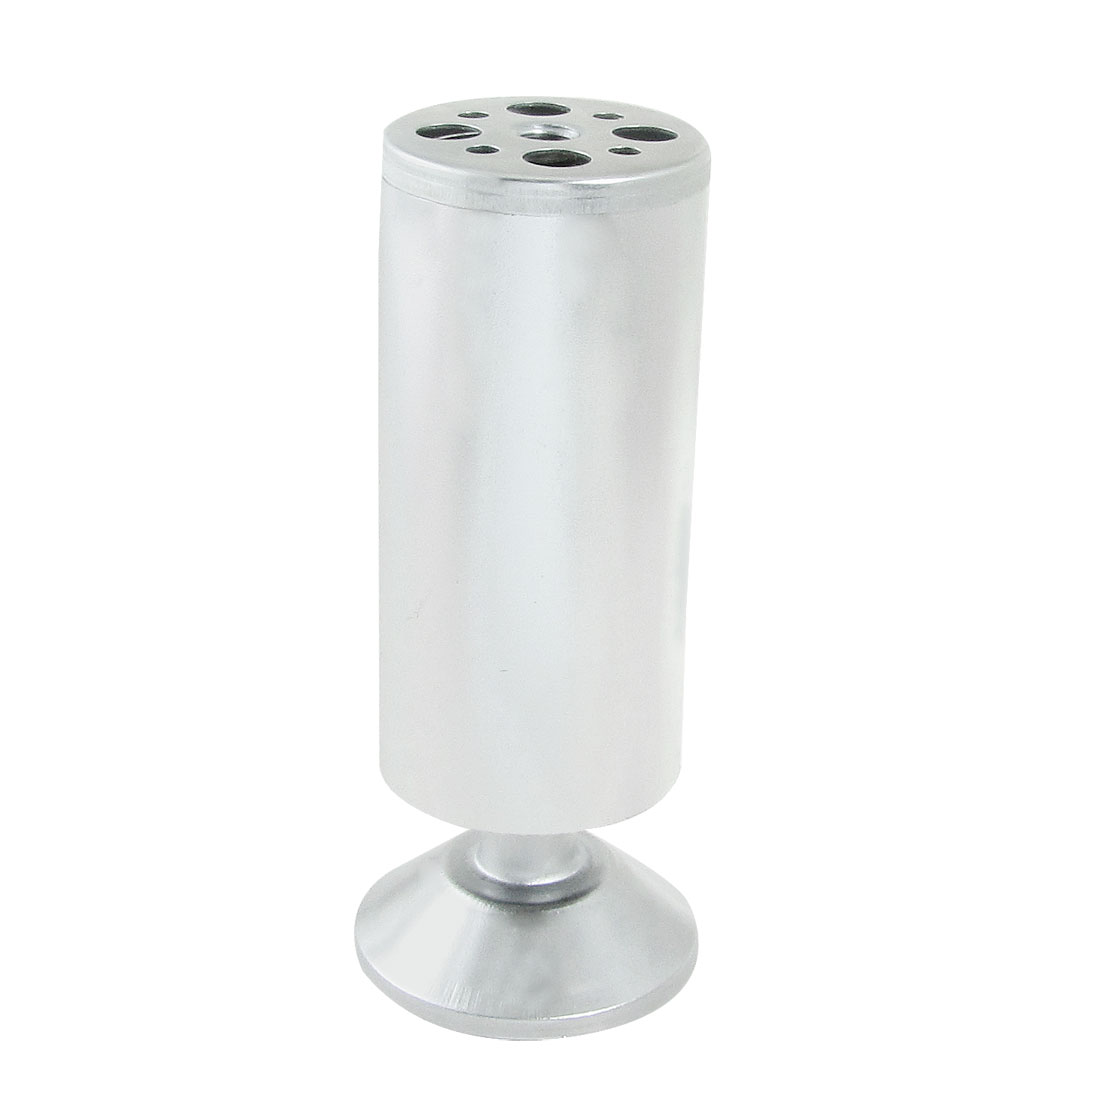 "Cupboard Wardrobe 2.3"" Diameter Silver Tone Alloy Foot"